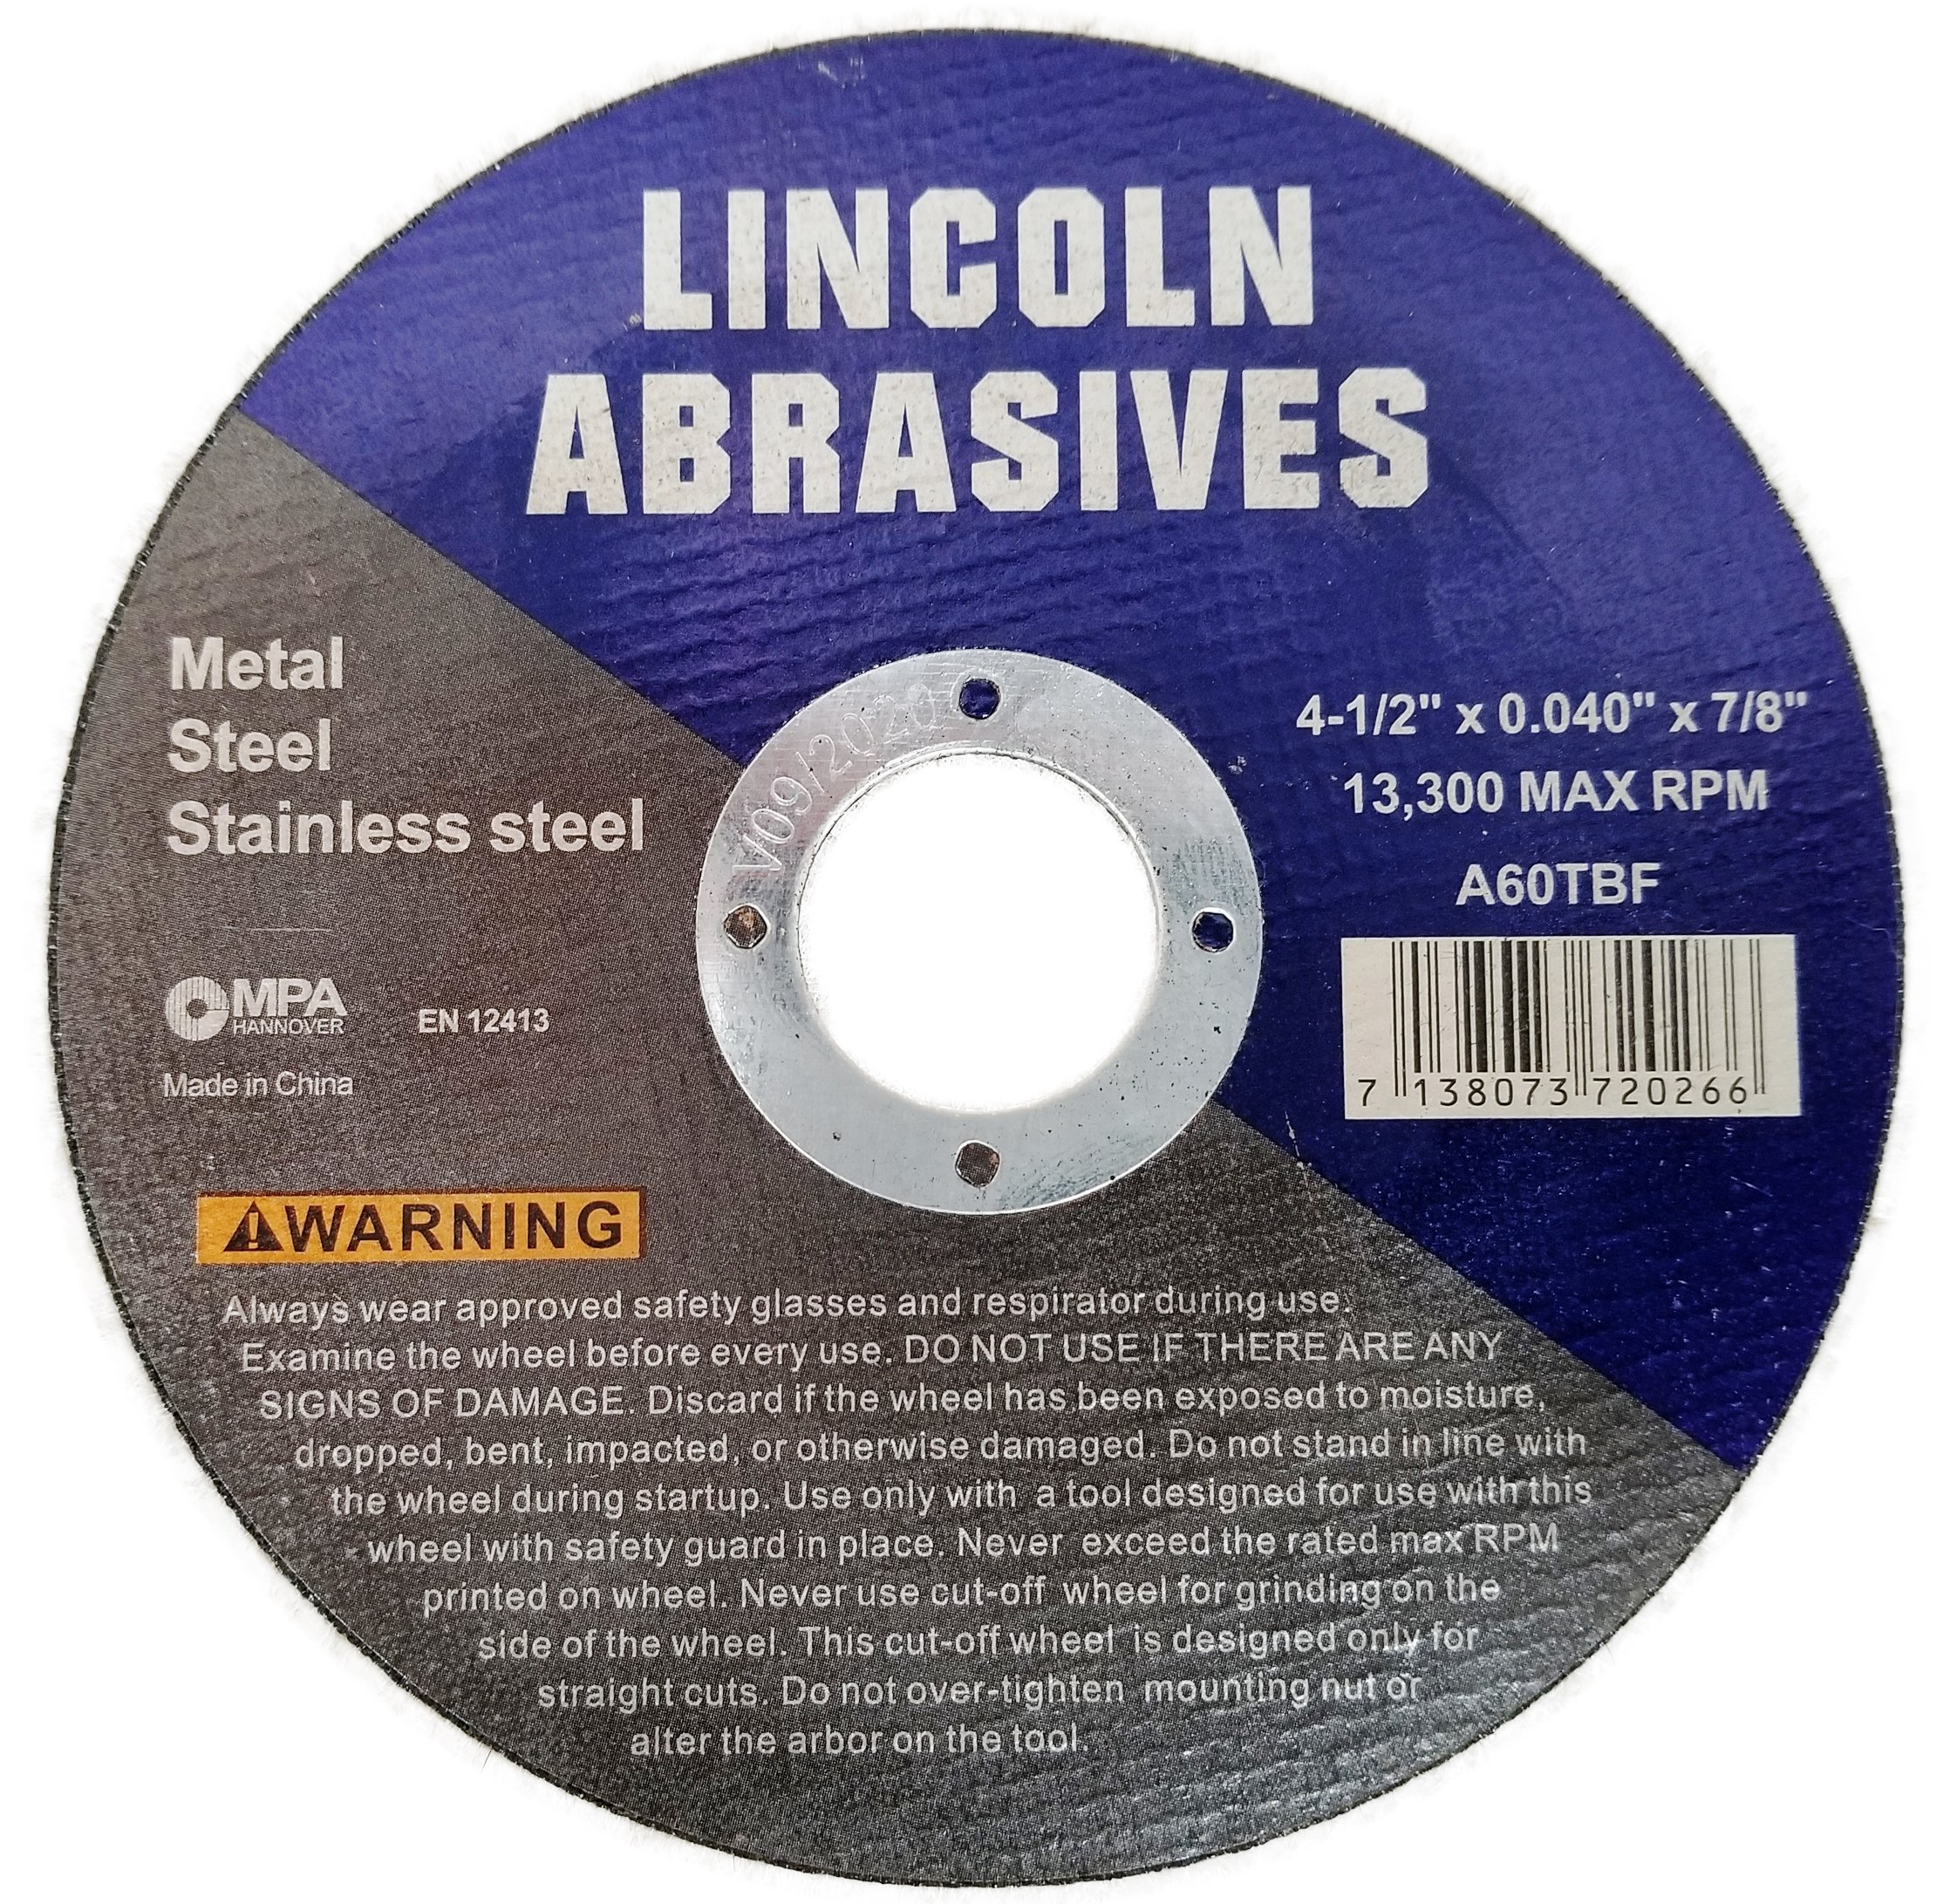 500 Pc 4.5''x.040''x7/8'' Cut-Off Wheels Lincoln Abrasives Metal & Stainless Steel by Lincoln Abrasives (Image #2)